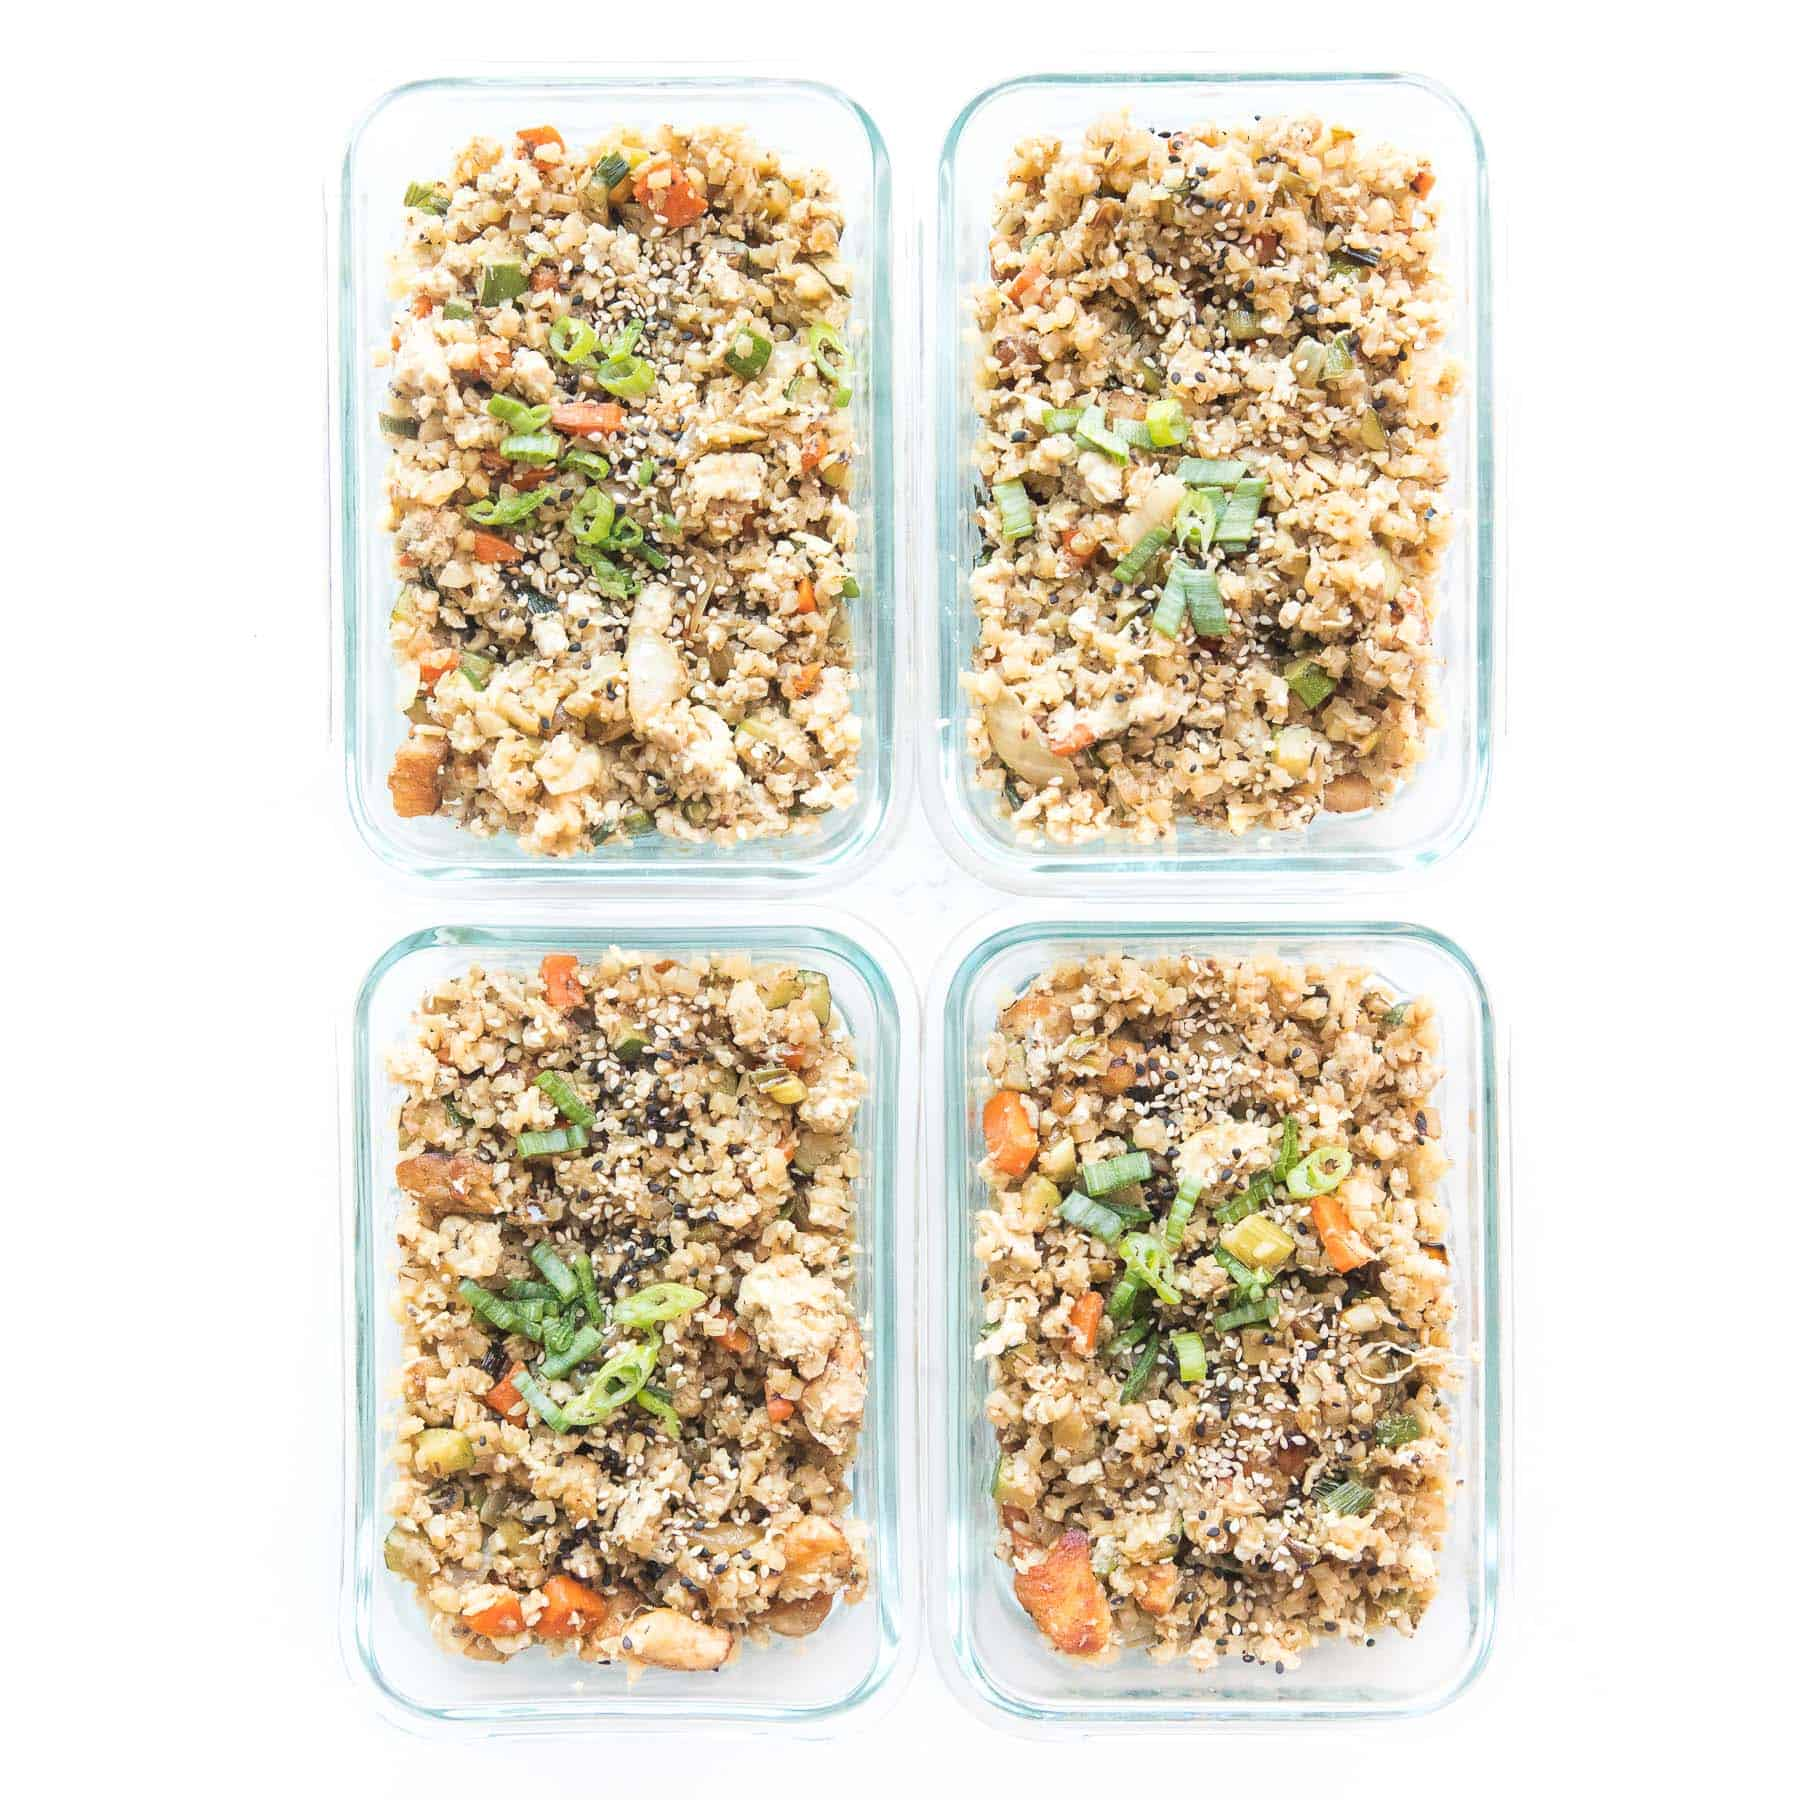 Whole30 + keto cauliflower fried rice in a meal prep containers